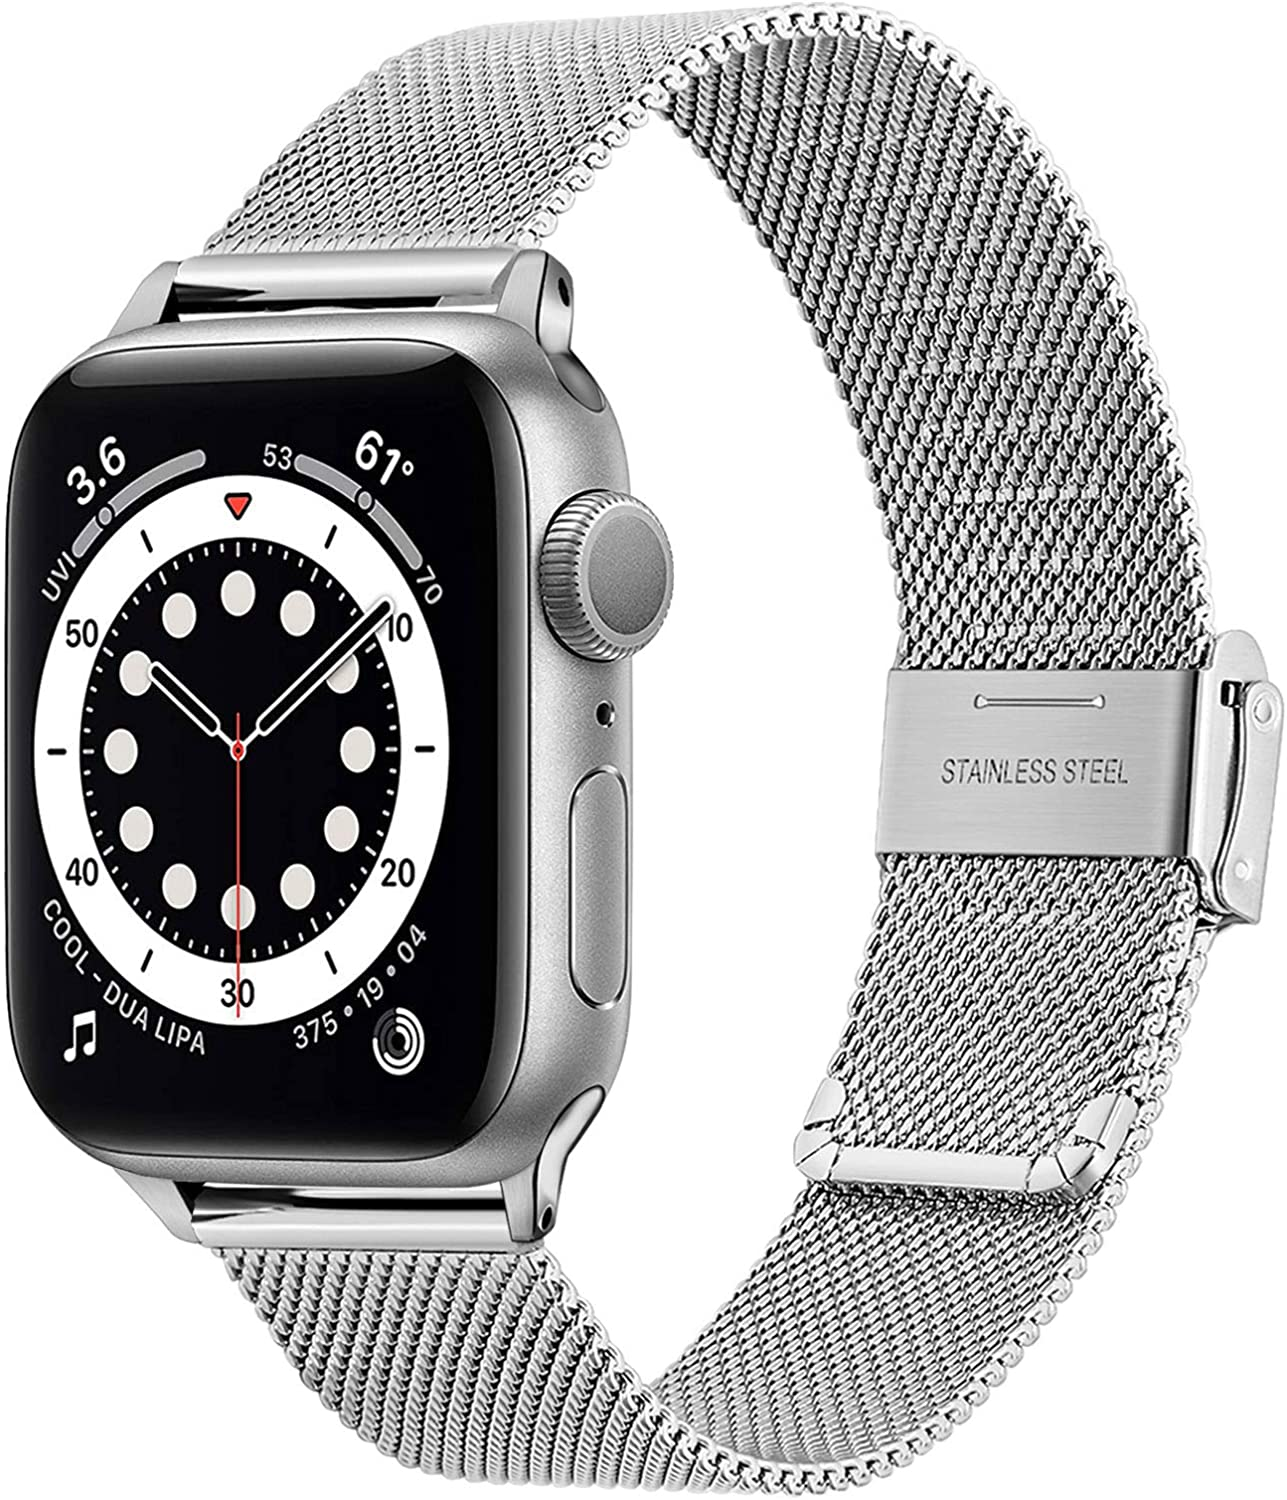 TRUMiRR Silver Band for Apple Watch Series 6 38mm 40mm Women Men, Mesh Woven Stainless Steel Watchband Replacement Strap Bracelet for iWatch Apple Watch SE Series 6 5 4 3 2 1 38mm 40mm